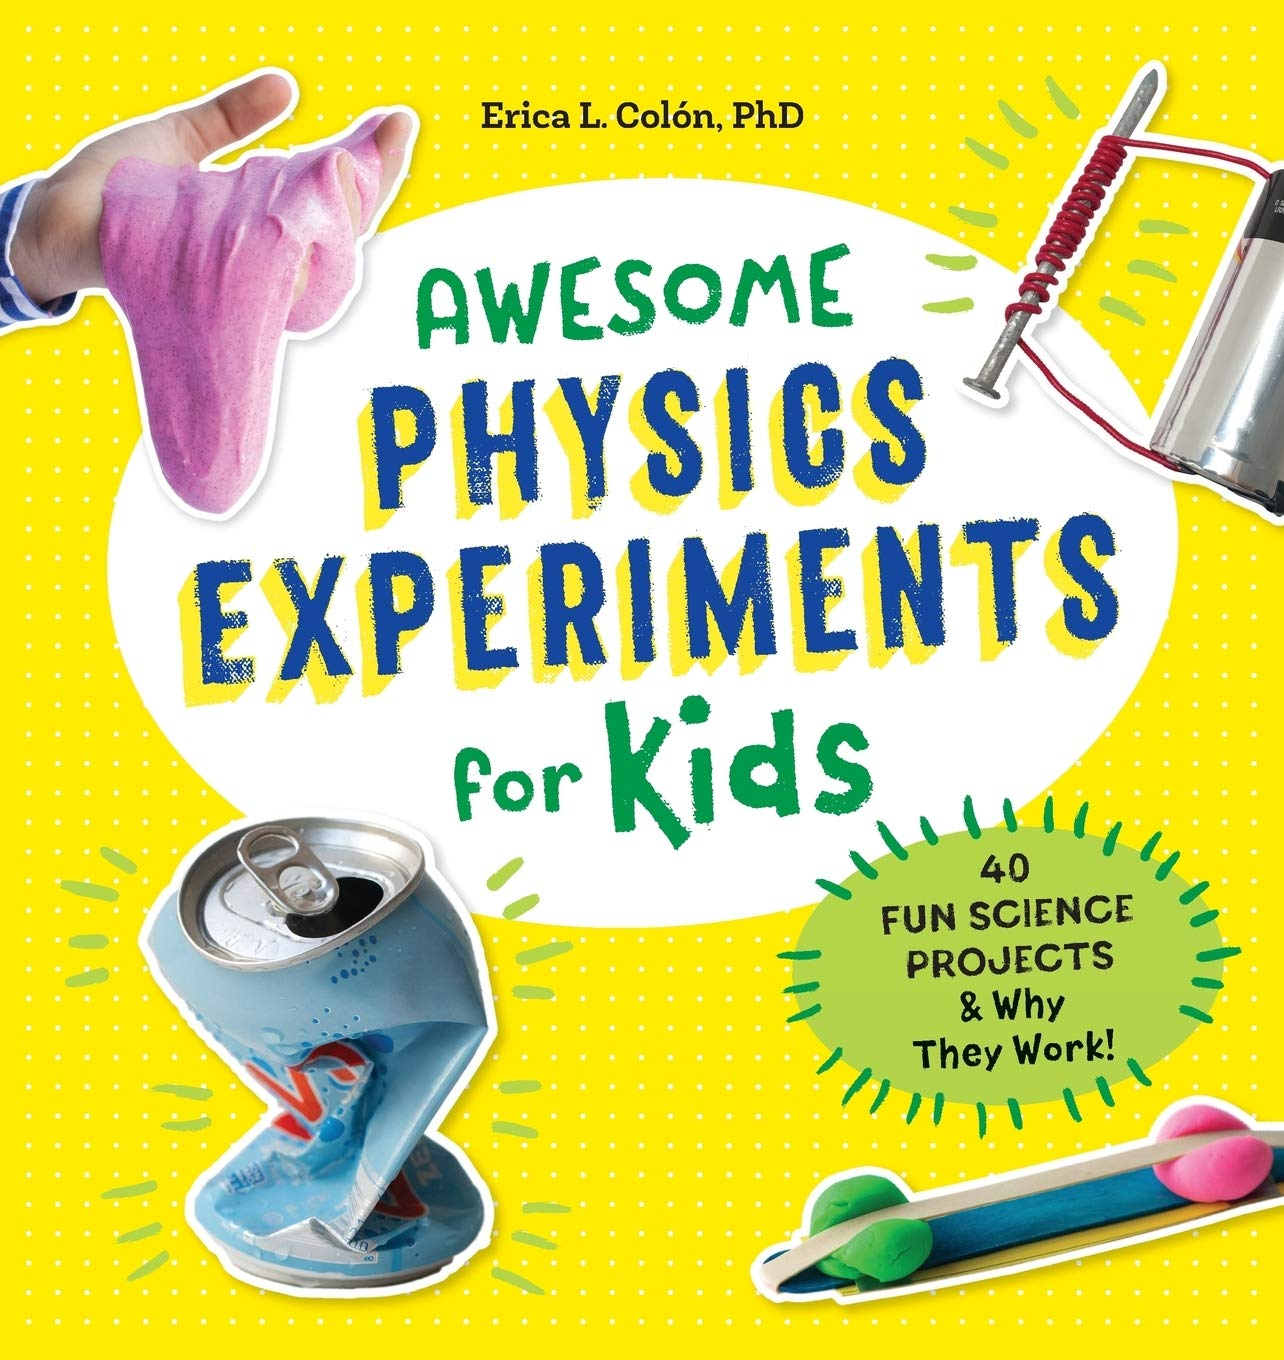 Awesome Physics Experiments For Kids 40 Fun Science Projects And Why They Work Steam Activities Colon Phd Erica L 9781641522984 Amazon Com Books